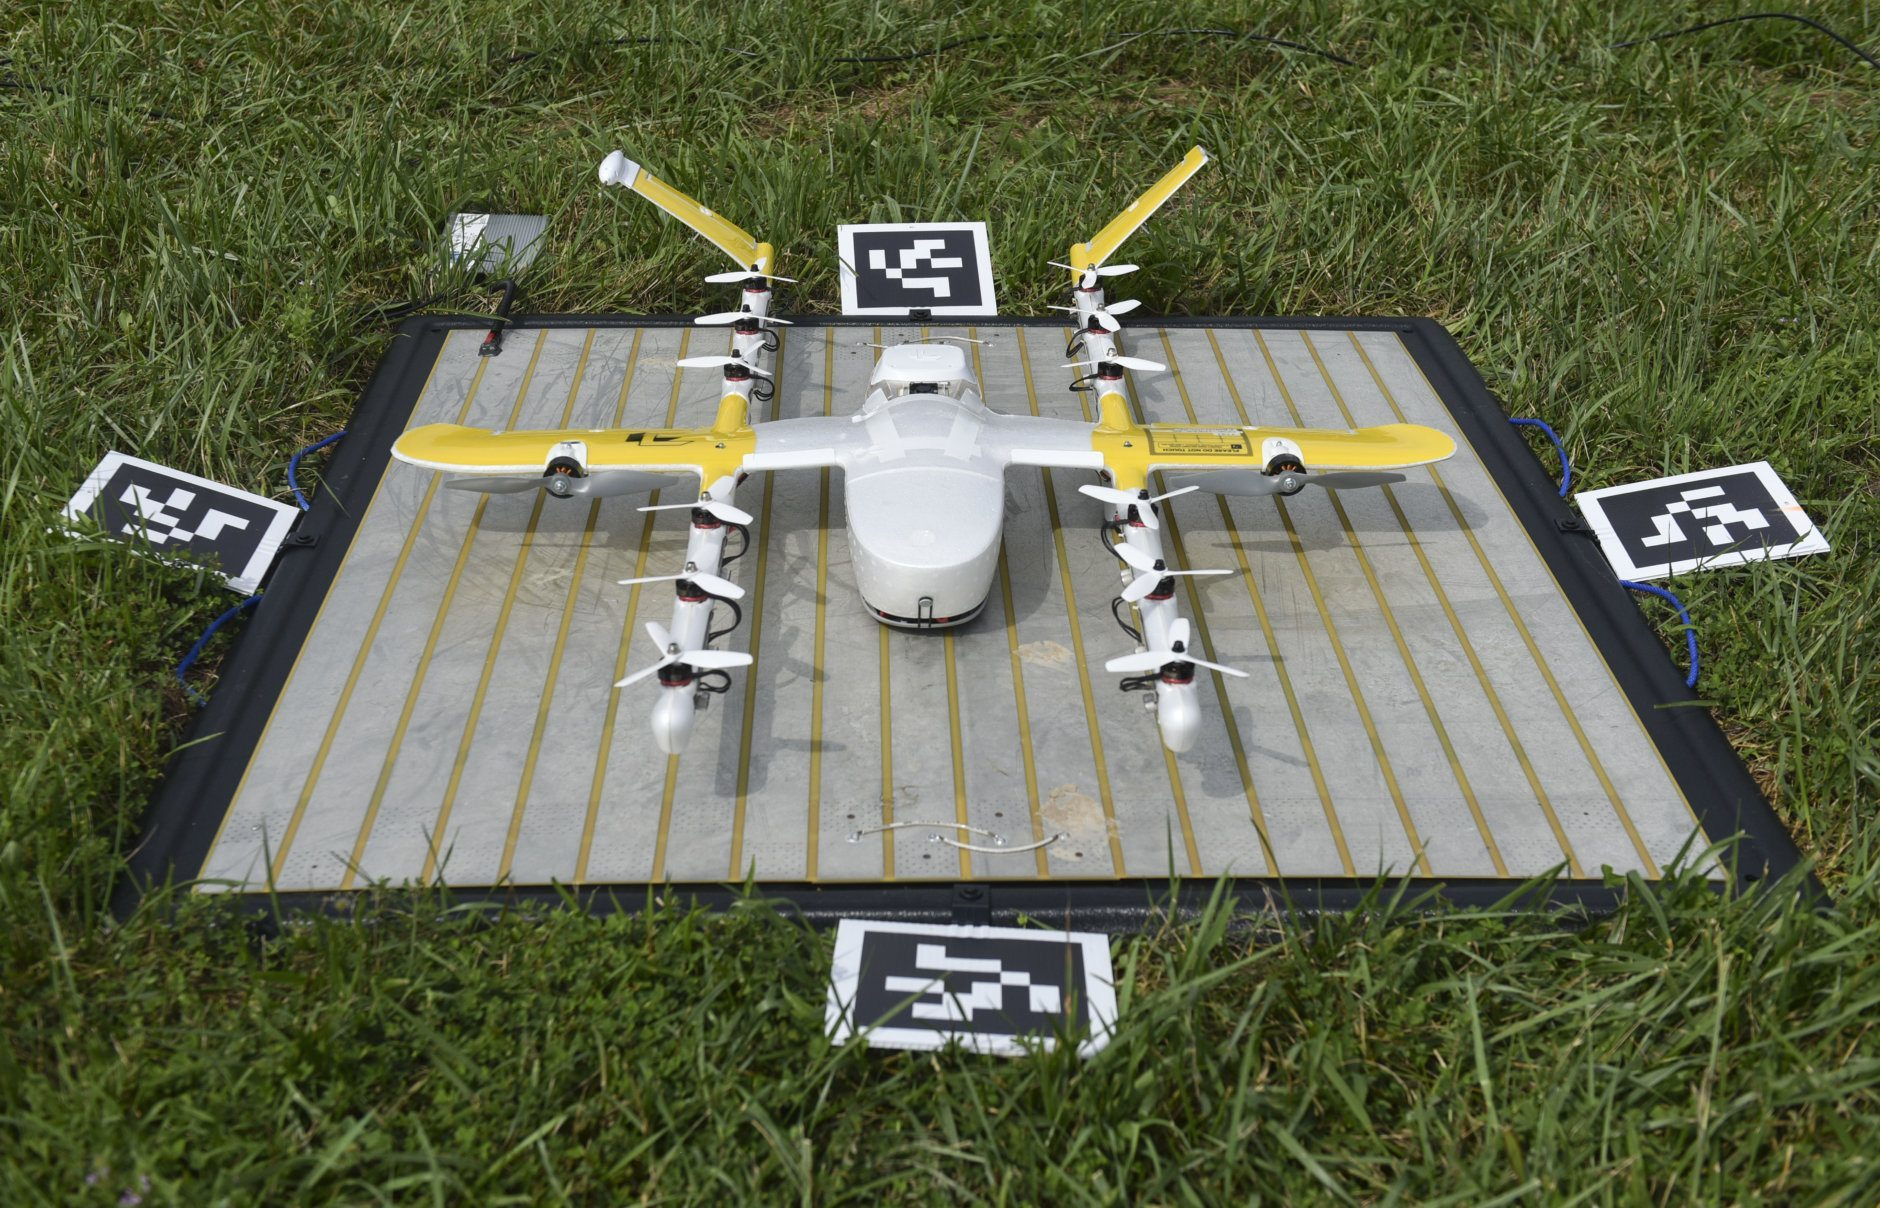 In this Tuesday, Aug, 7, 2018, photo a Wing Hummingbird drone from Project Wing sits on its launch pad and awaits flight at Kentland Farms in Blacksburg, Va. Wing, a subsidiary of Google's parent corporation Alphabet, hasn't been allowed to fly long distances, over people and beyond the pilot's line of sight. That changed when Virginia was selected as one of 10 areas to participate in an experimental program that would lower barriers on the technology. (Michael Shroyer via AP)